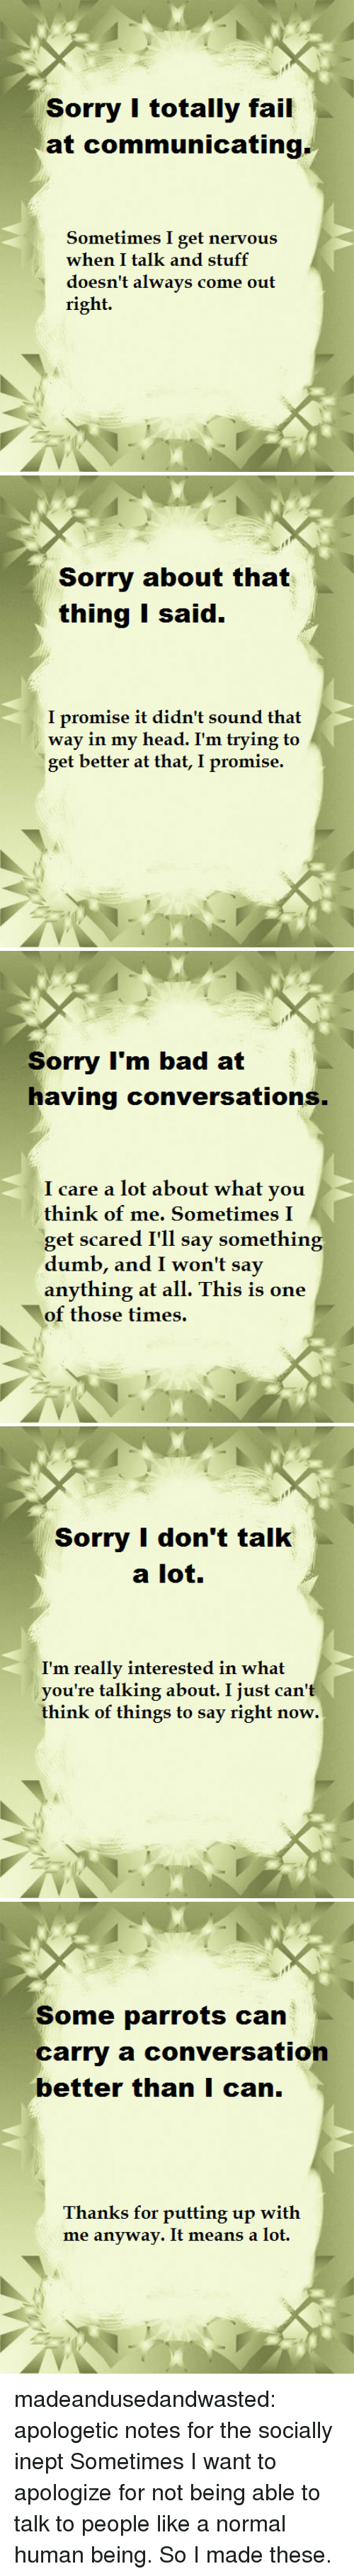 apologetic: Sorry I totally fail  at communicating  Sometimes I get nervous  when I talk and stuff  doesn't always come out  right.   Sorry about that  thing I said.  promise i  way in my head. I'm trying to  get better at that, I promise.  t dian't soün   Soimy I'm bad at  having conversations  care a lot about what yoiu  think of me. Sometimes I  get scared I'll say something  anything at all. This is one  of those times.   Sorry I don't talk  a lot  I'm really interested in what  you're talking about. I just can't  think of things to say right now.   Some parrots can  carry a conversation  better thanI can.  Thanks for putting up with  me anyway. It means a lot. madeandusedandwasted:   apologetic notes for the socially inept  Sometimes I want to apologize for not being able to talk to people like a normal human being. So I made these.